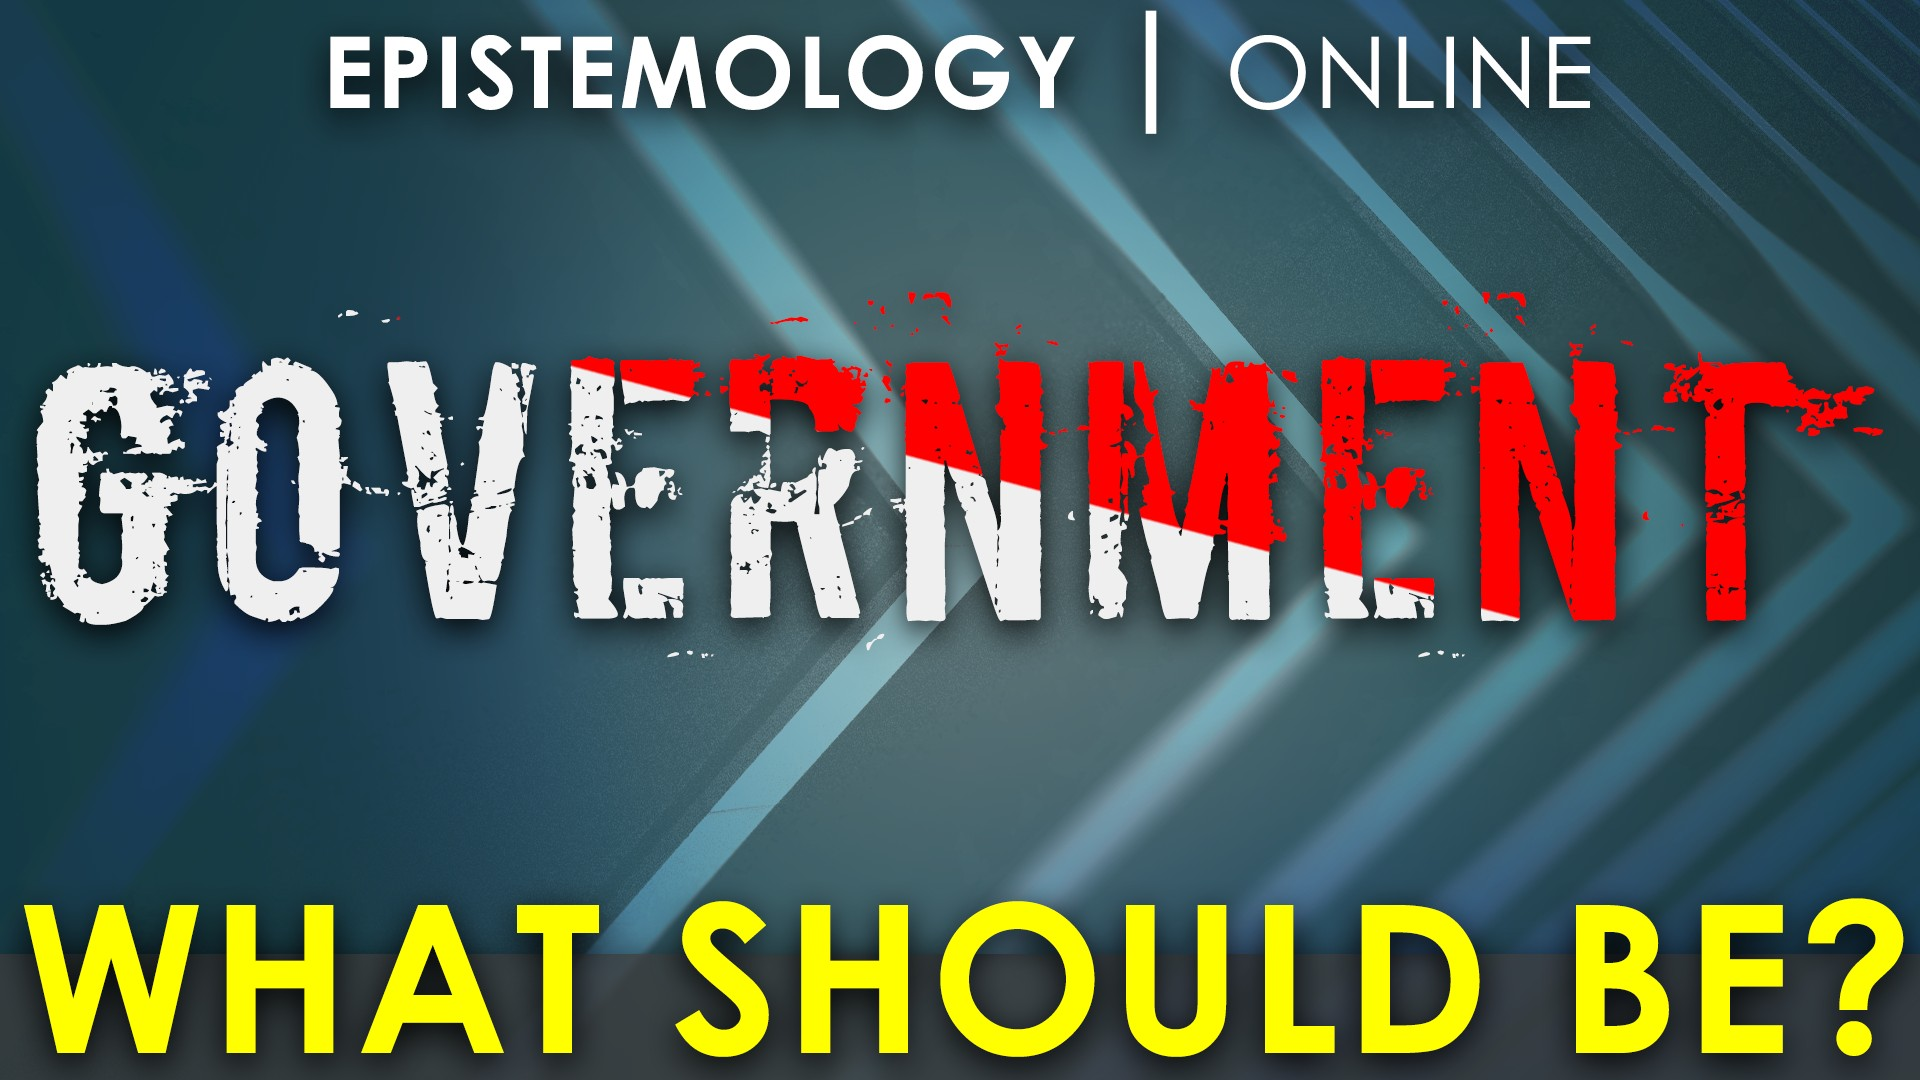 Government - what should be? Amanda 2/4 Epistemology Online